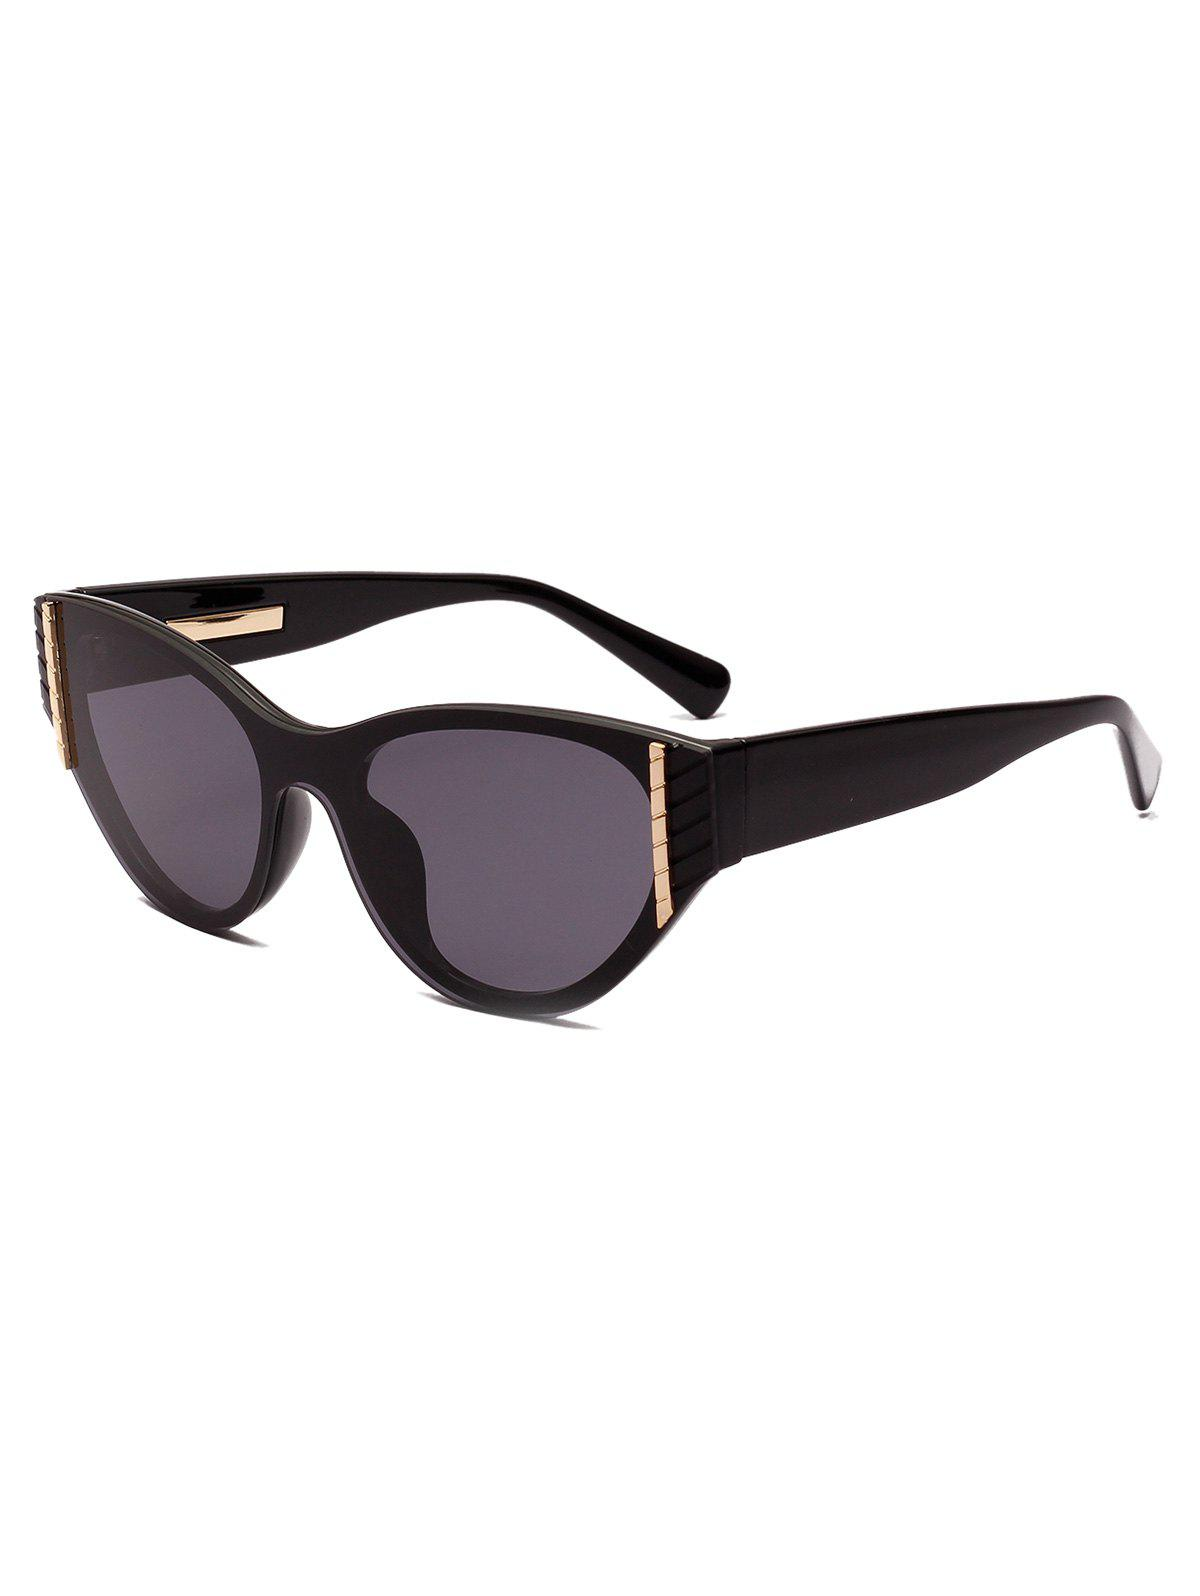 Fashion Geometric Rivet Vintage Catty Eye Sunglasses